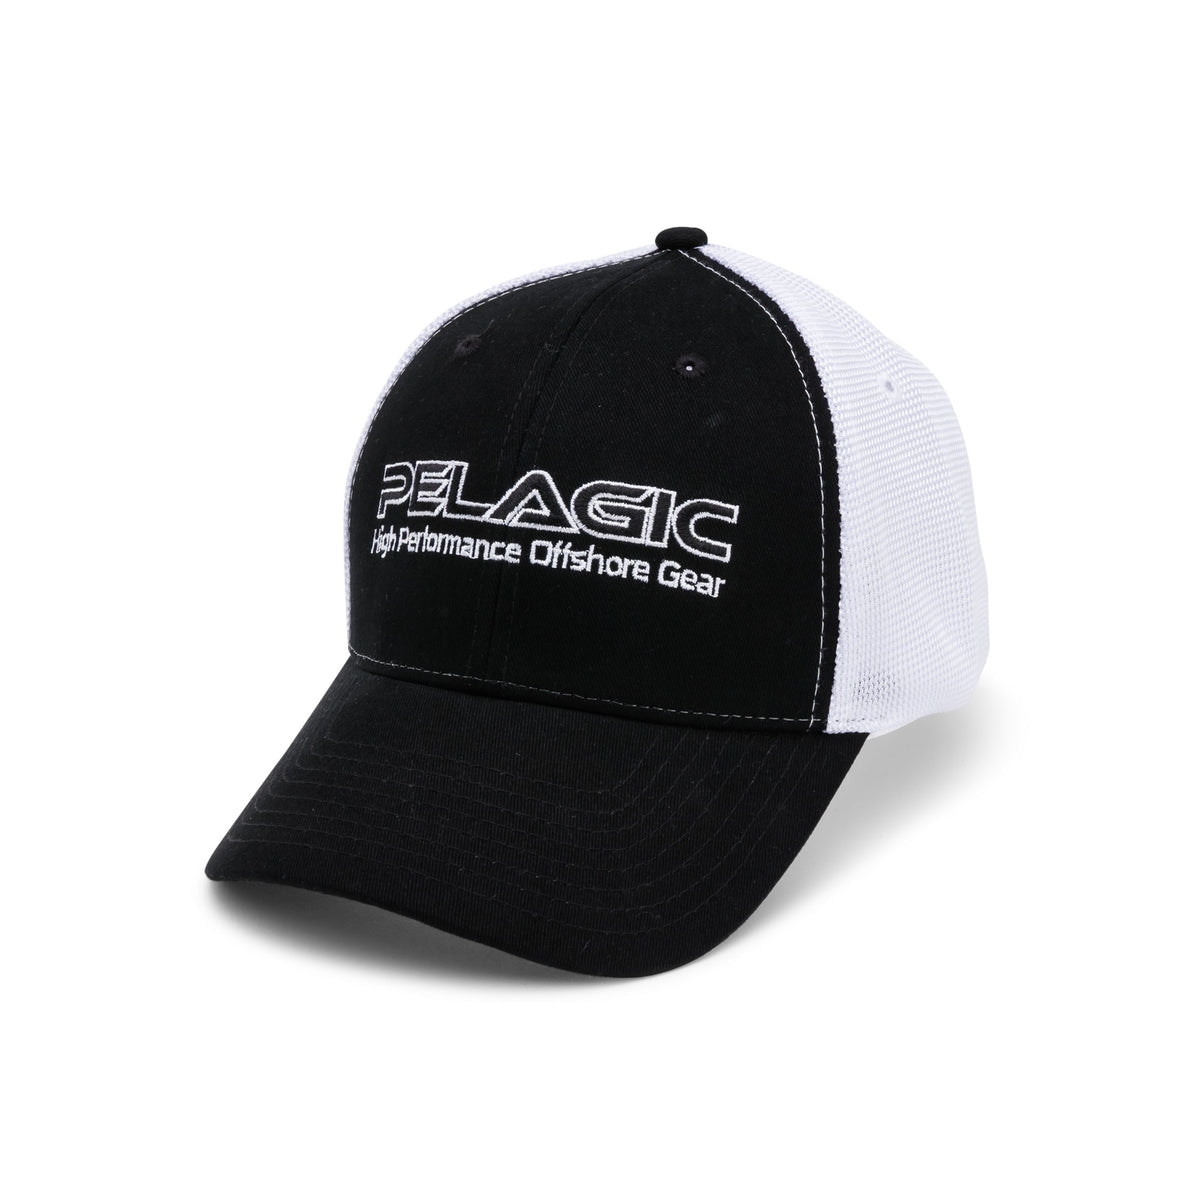 Offshore Fishing Hat Big Image - 1